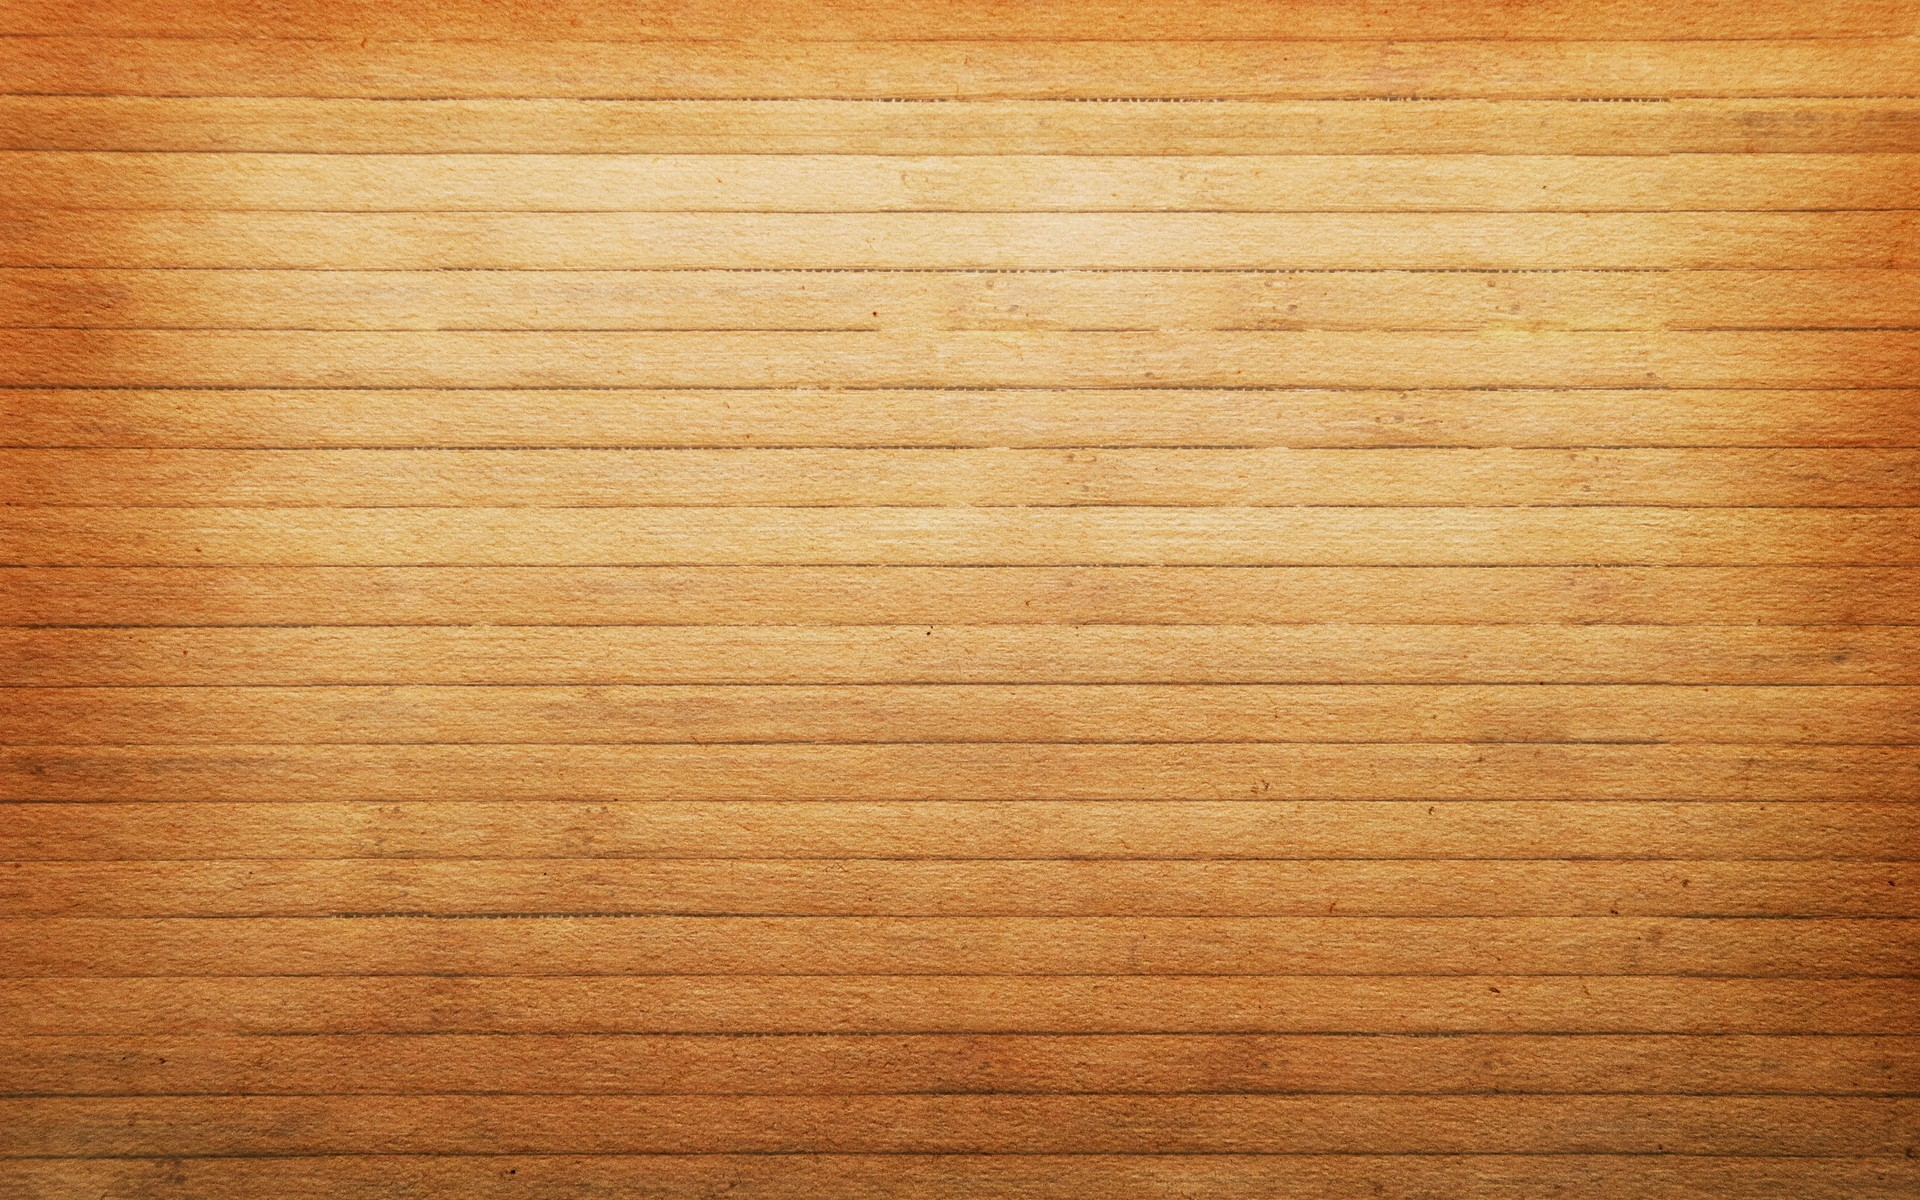 Wood Texture Background 1920×1200 #132917 HD Wallpaper Res: .